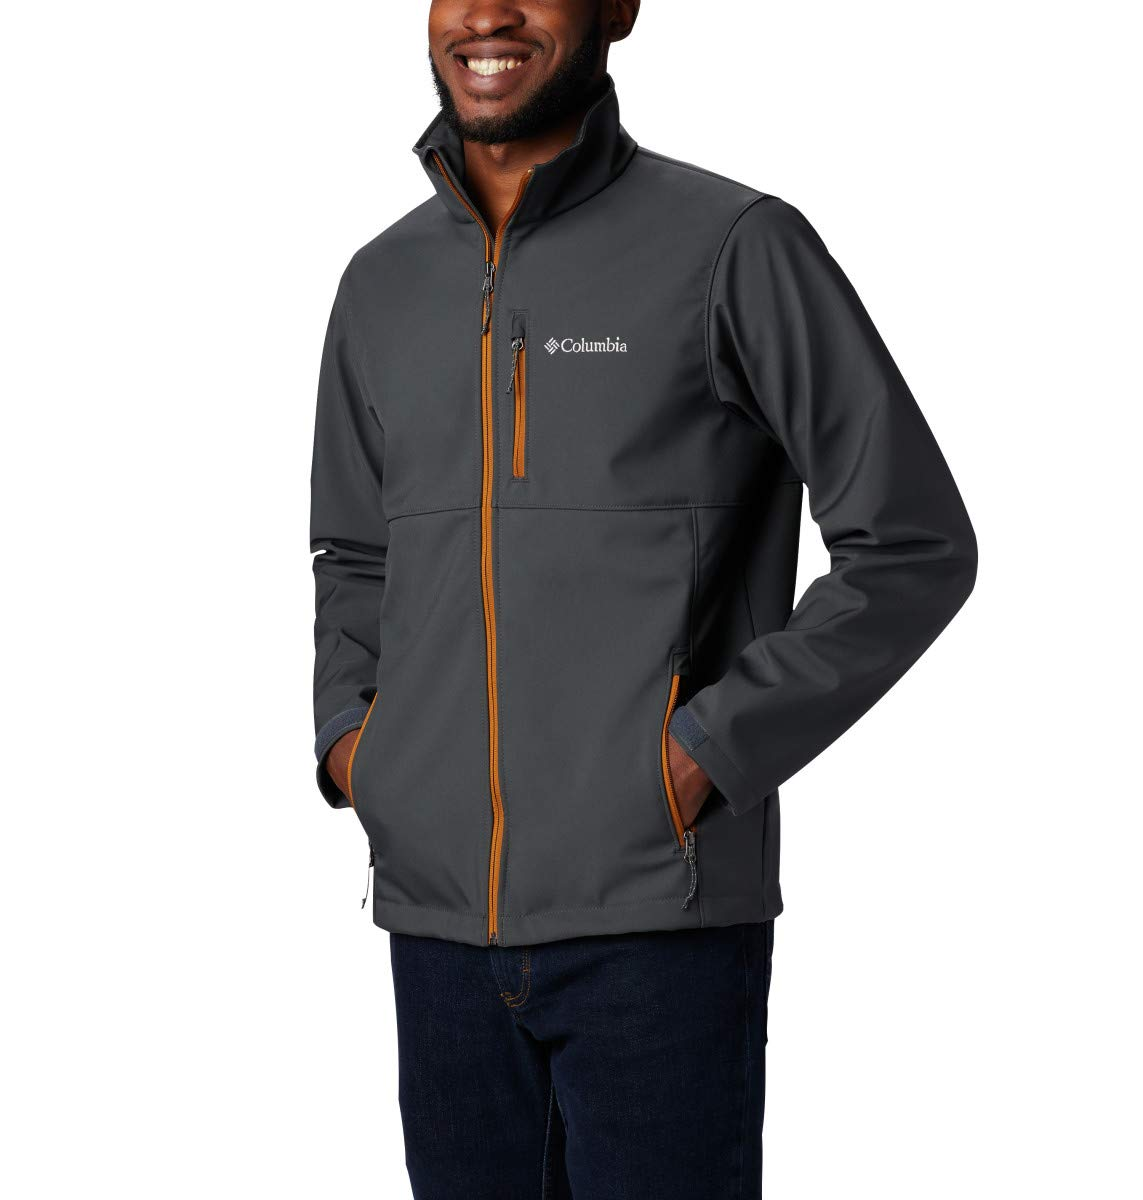 Columbia Men's Ascender Softshell Jacket, Water & Wind Resistant, Shark, Large by Columbia